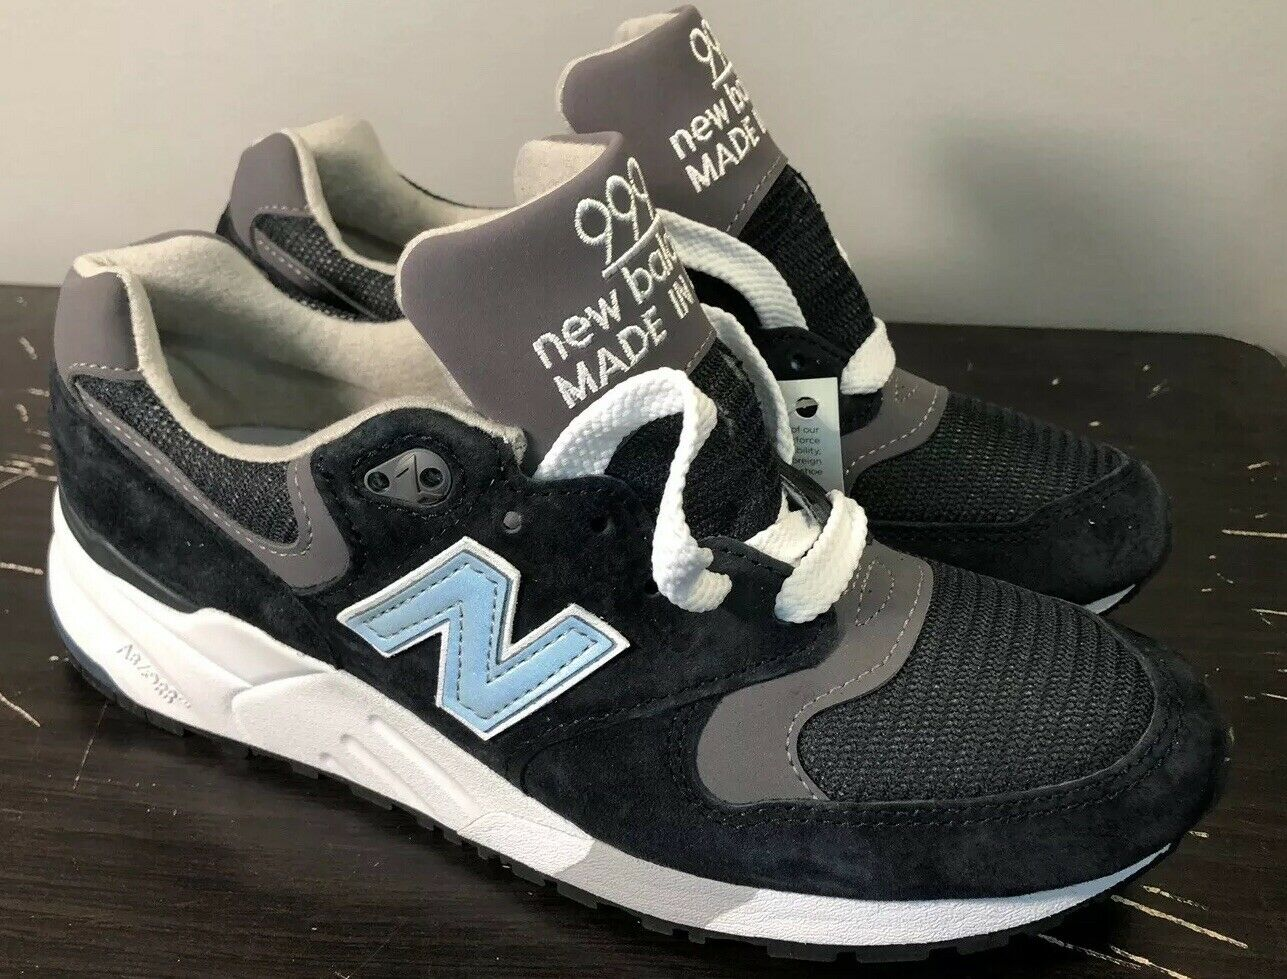 New in Box M999CBL New Balance Men 999 M999CBL sz 5 Made In USA Navy kith